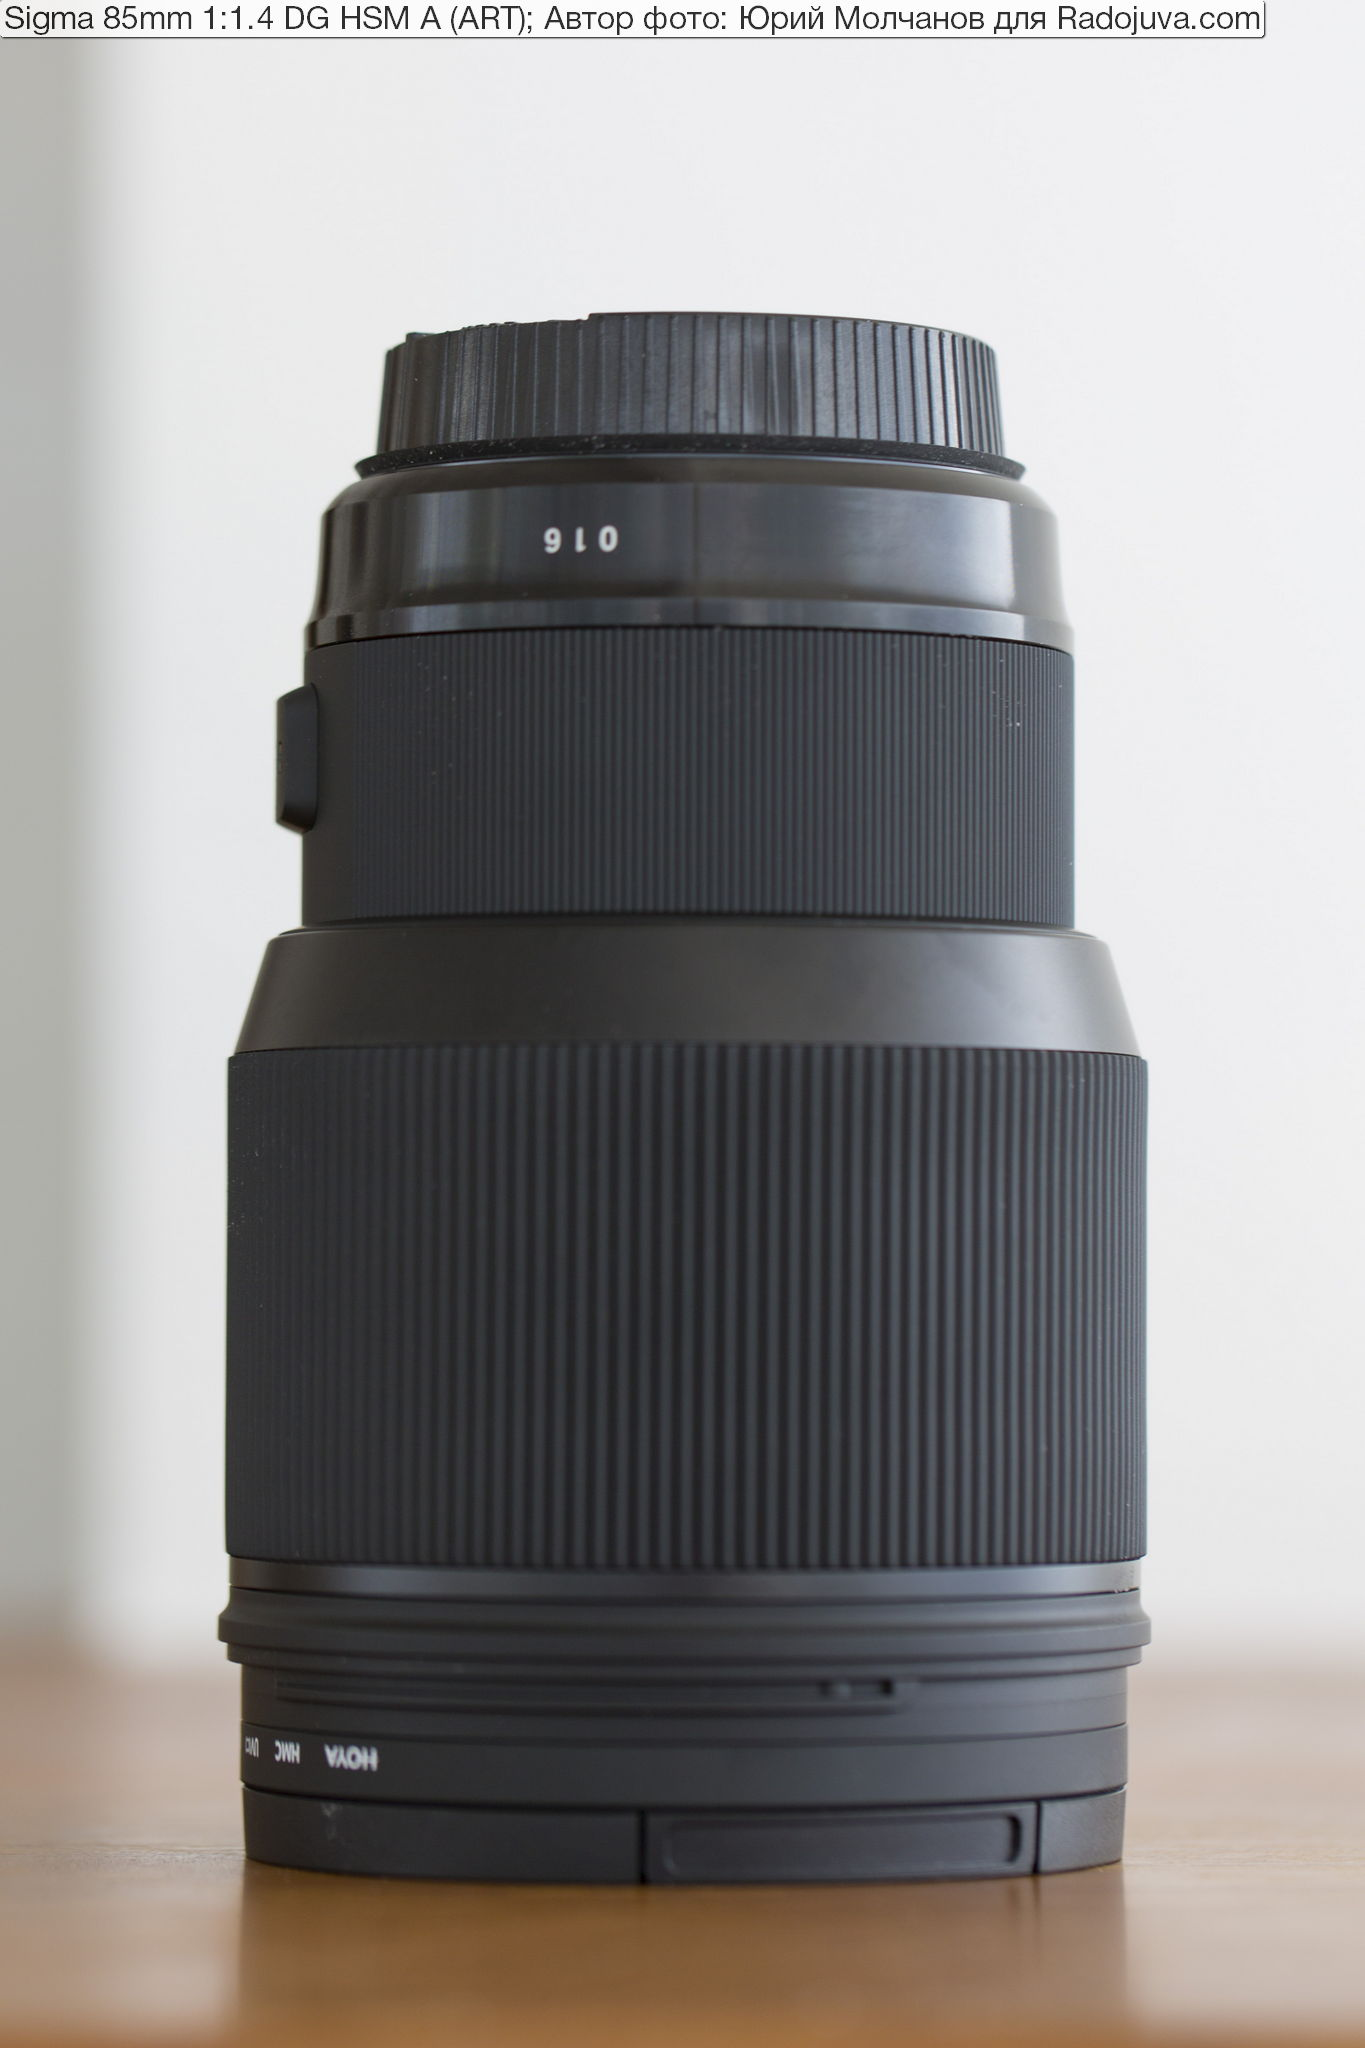 Sigma 85mm 1:1.4 DG HSM | A (Art)